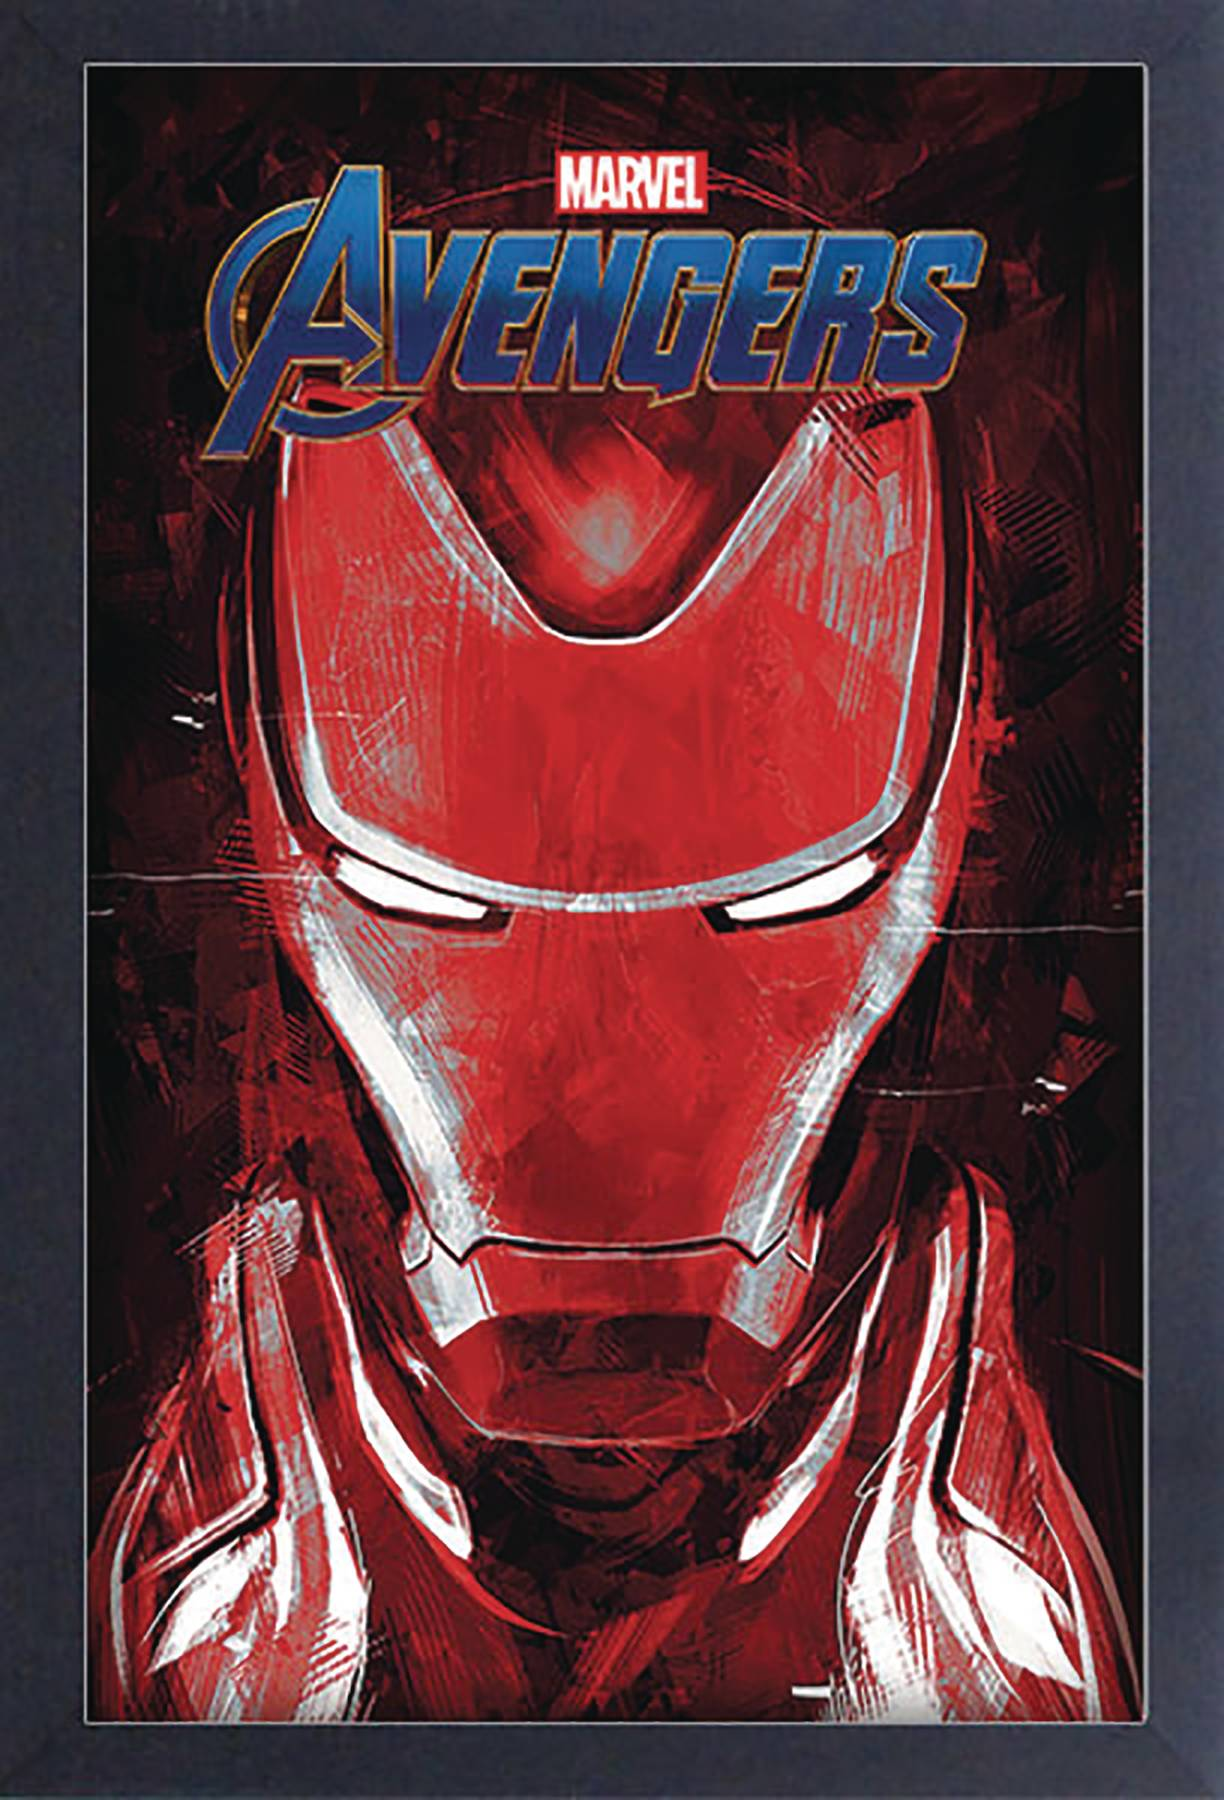 AVENGERS ENDGAME IRON MAN 11X17 FRAMED GEL COAT PRINT